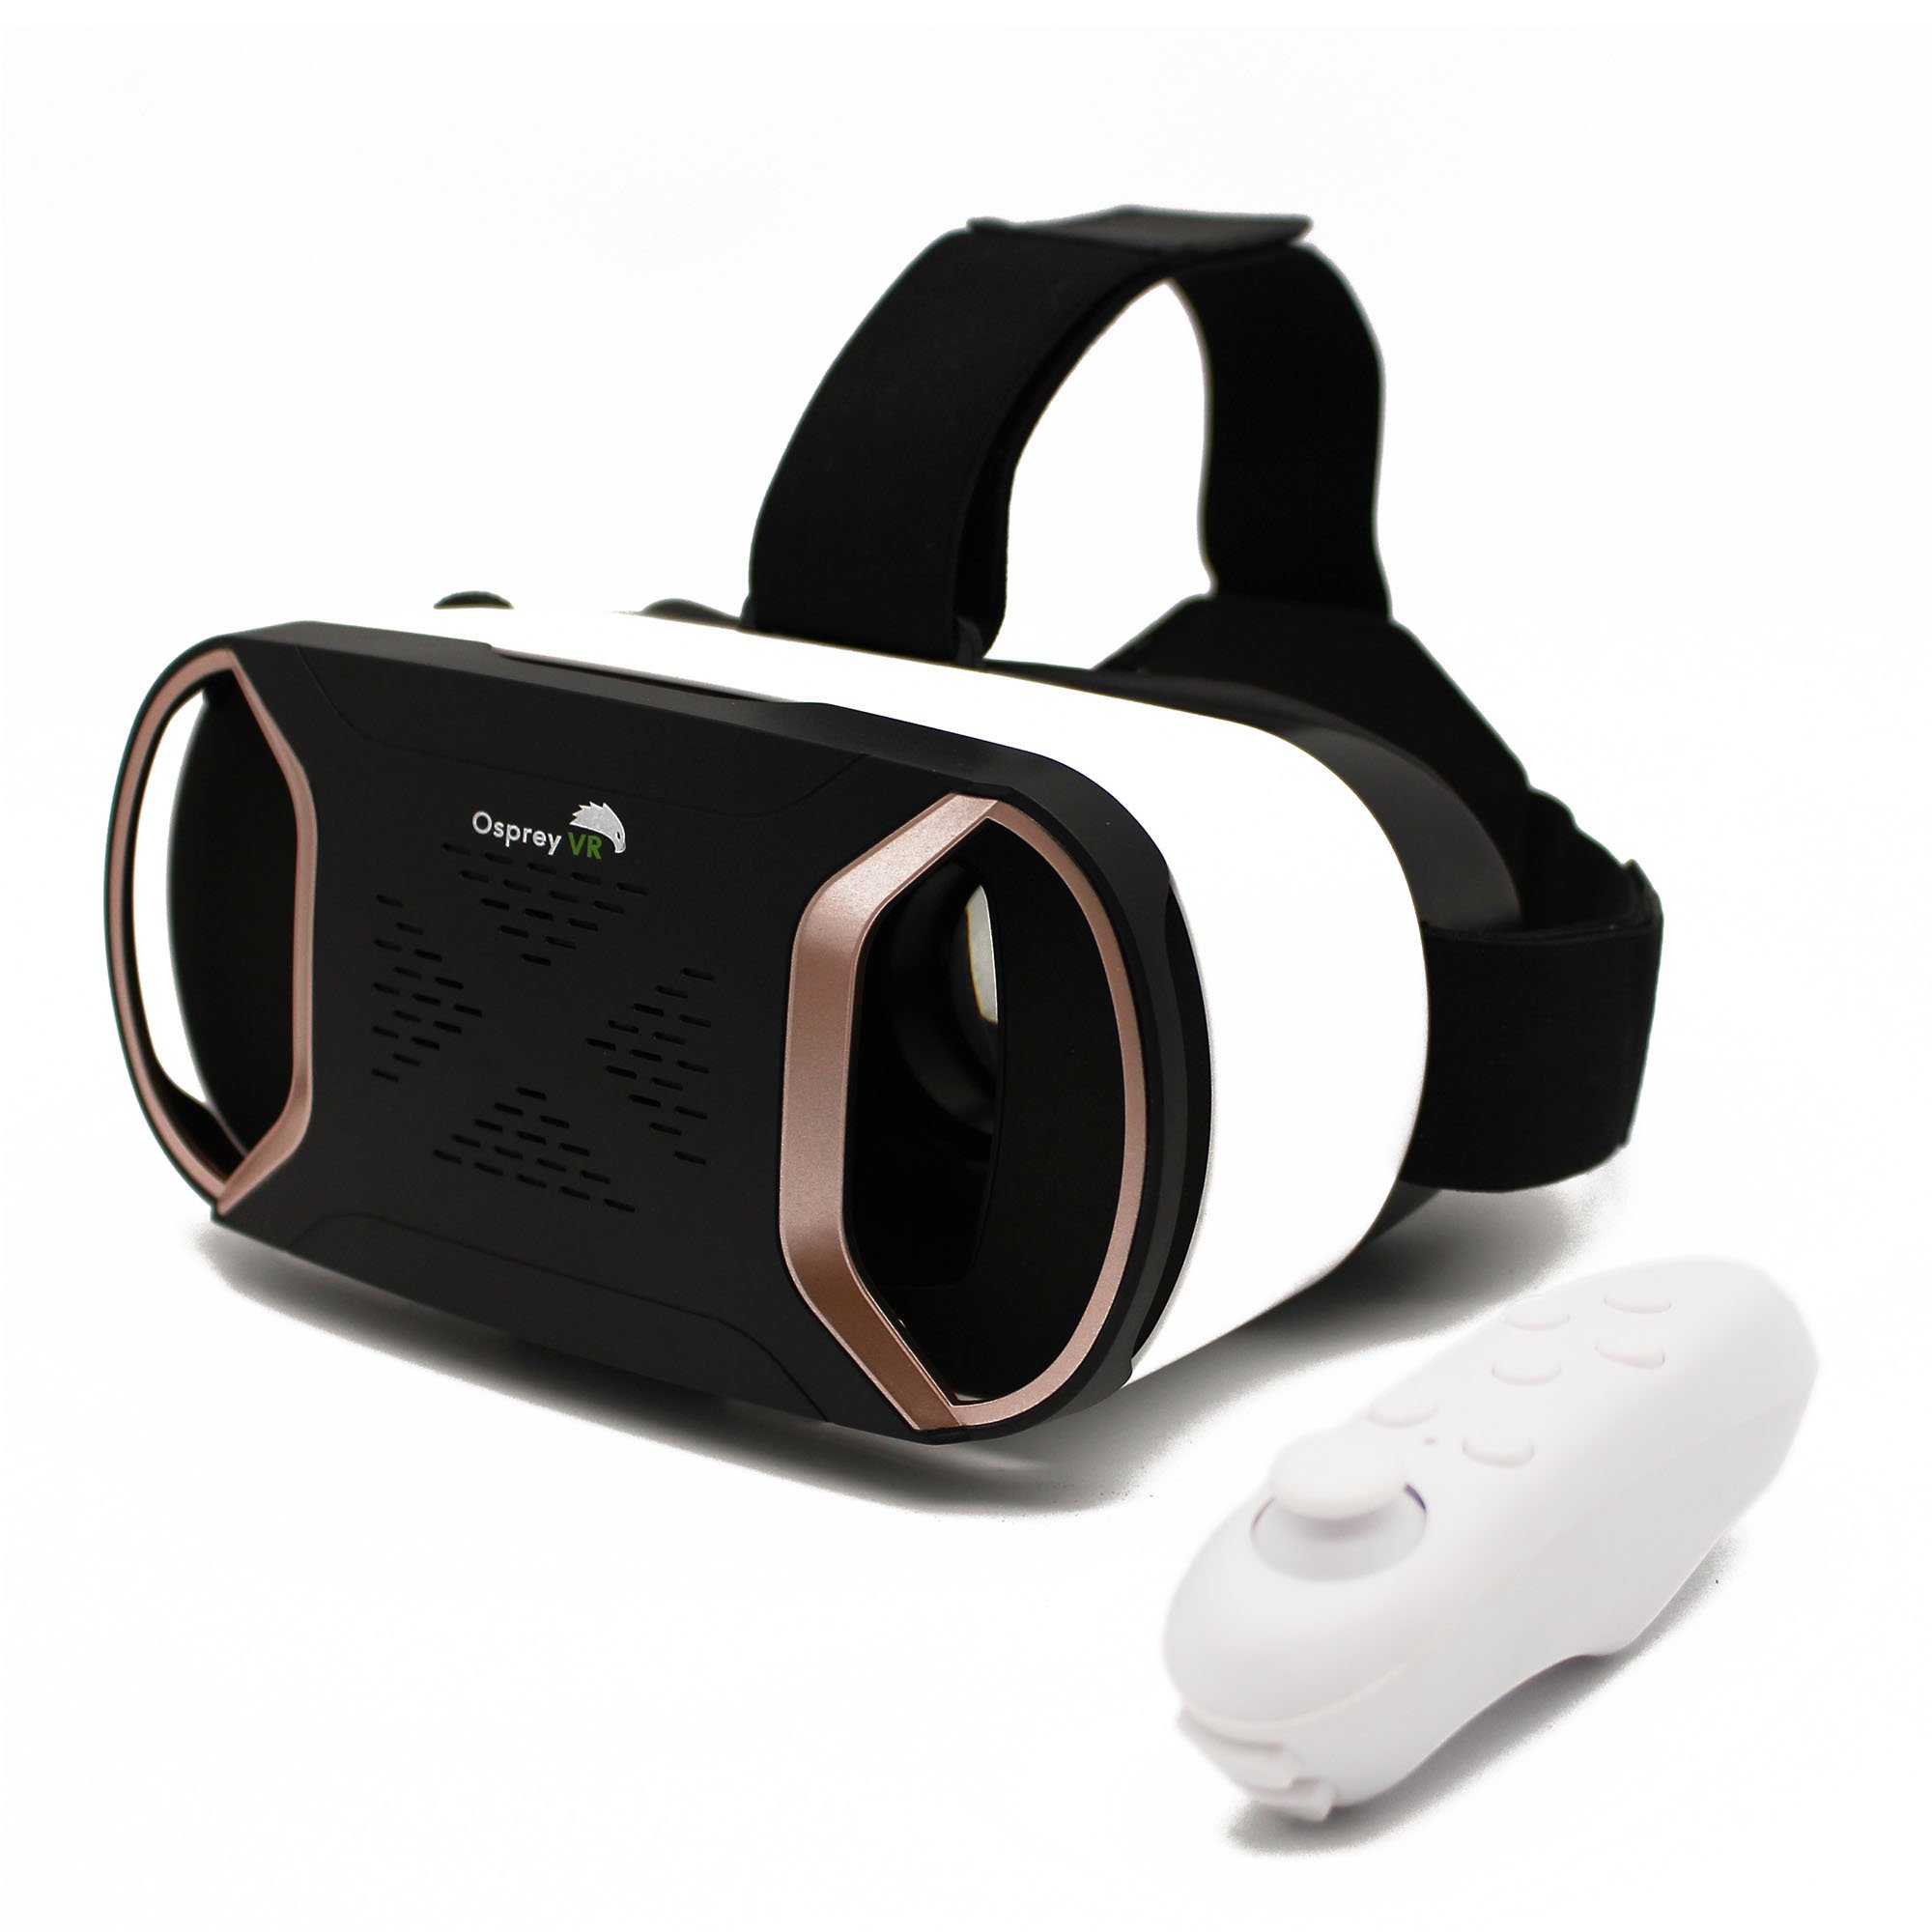 VR Headset with Wireless Remote - Virtual Reality Headset Goggles For iPhone Samsung Android Phone - Wireless Augmented Reality 3D Experience - Best Kids' Phone Accessories - Blue Light Protection